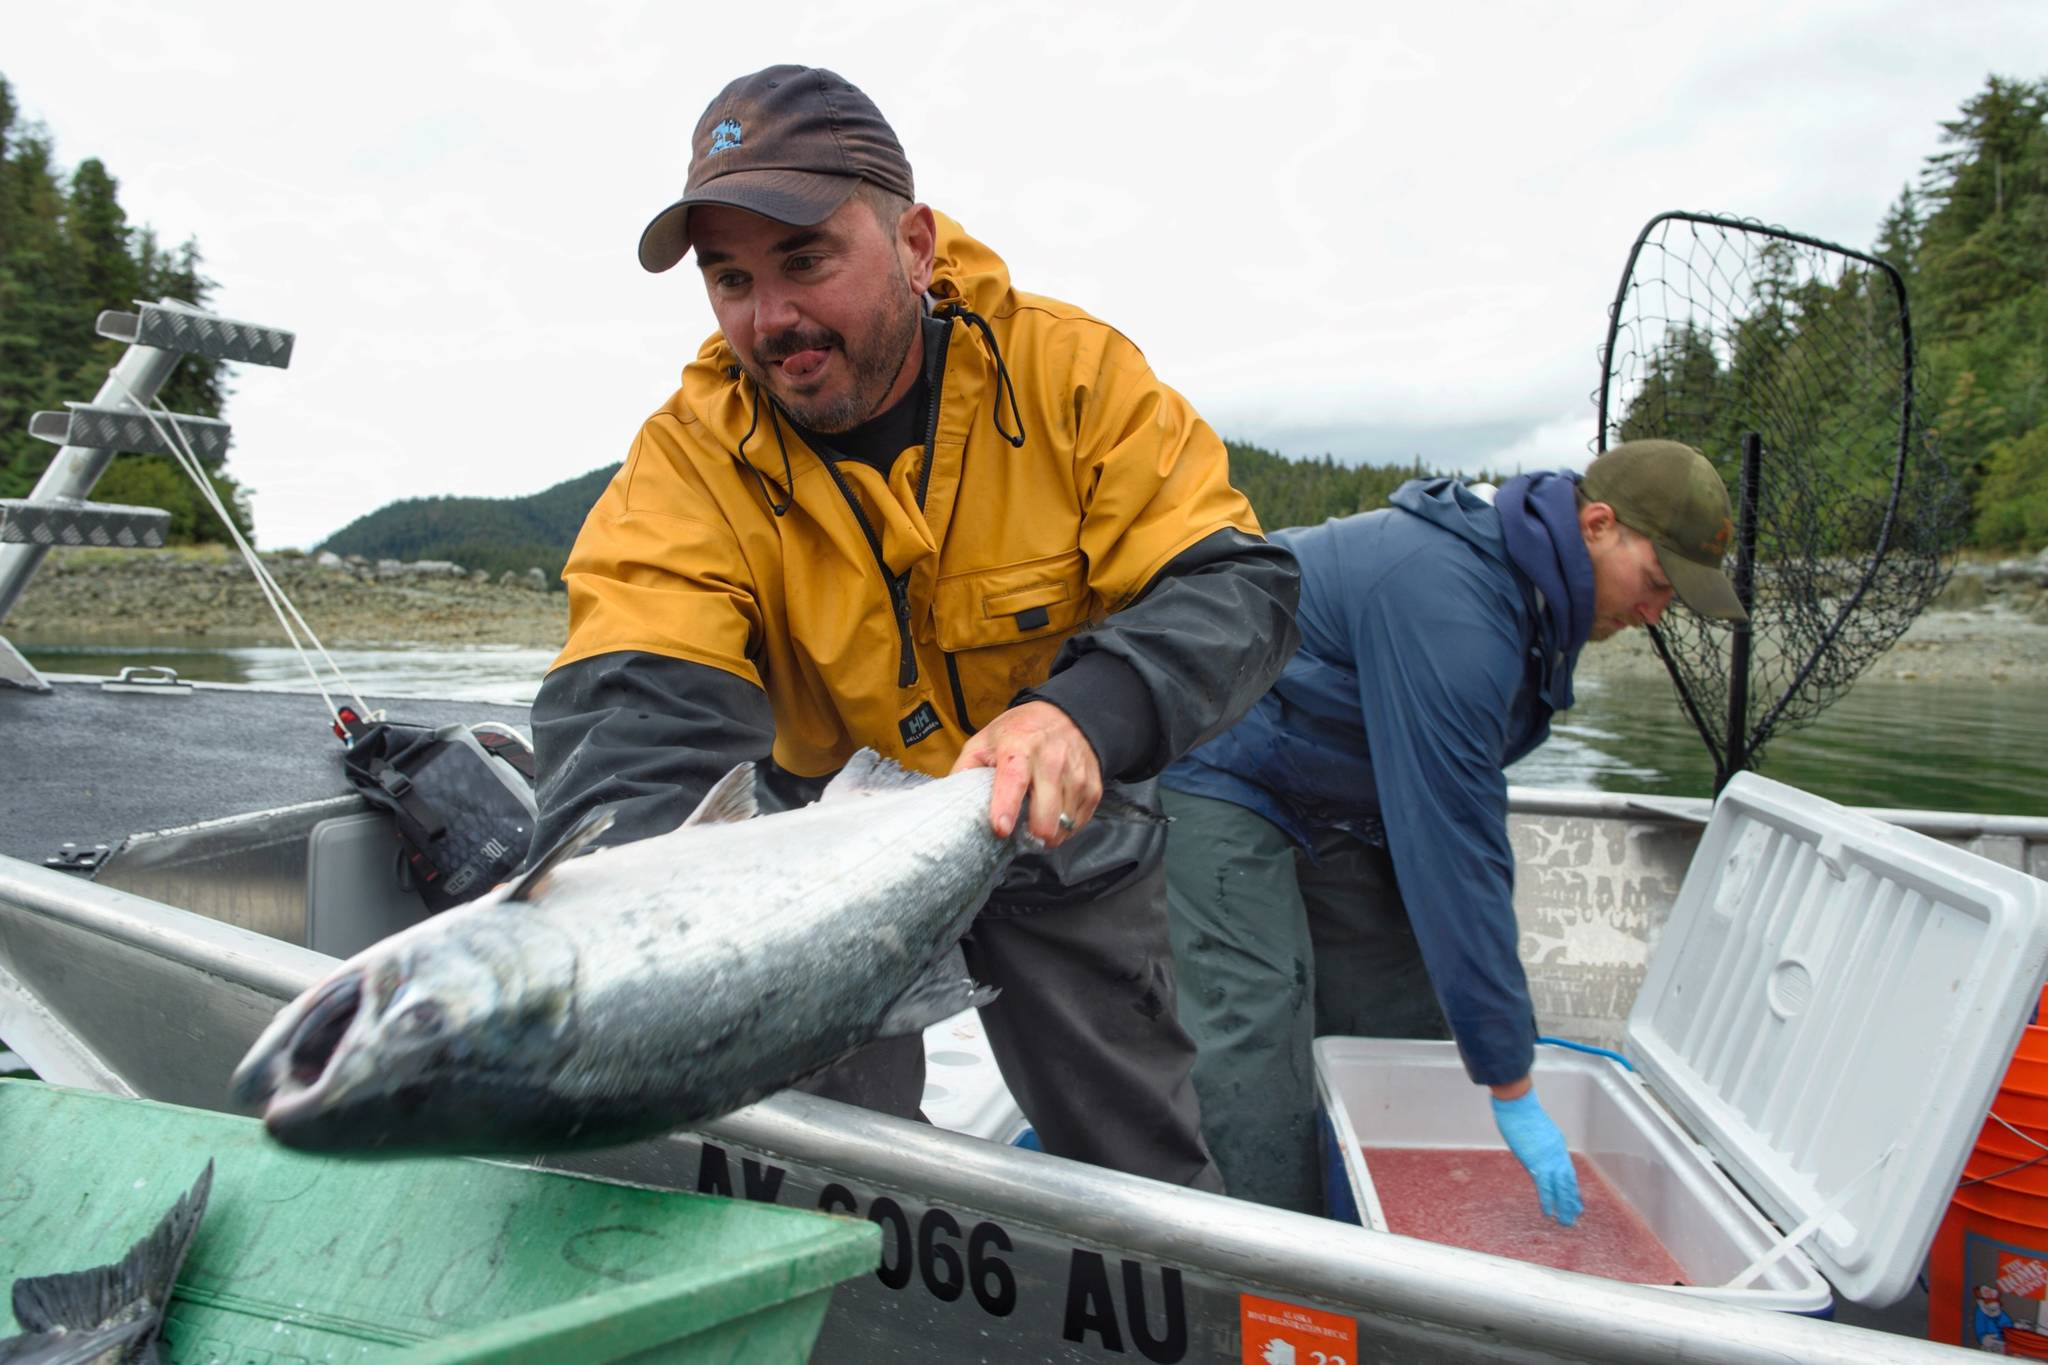 John Bohan, left, and Dusty Riesterer offload a dozen coho at the Golden North Salmon Derby's station at Amalga Harbor on Saturday, Aug. 24, 2019. (Michael Penn | Juneau Empire)